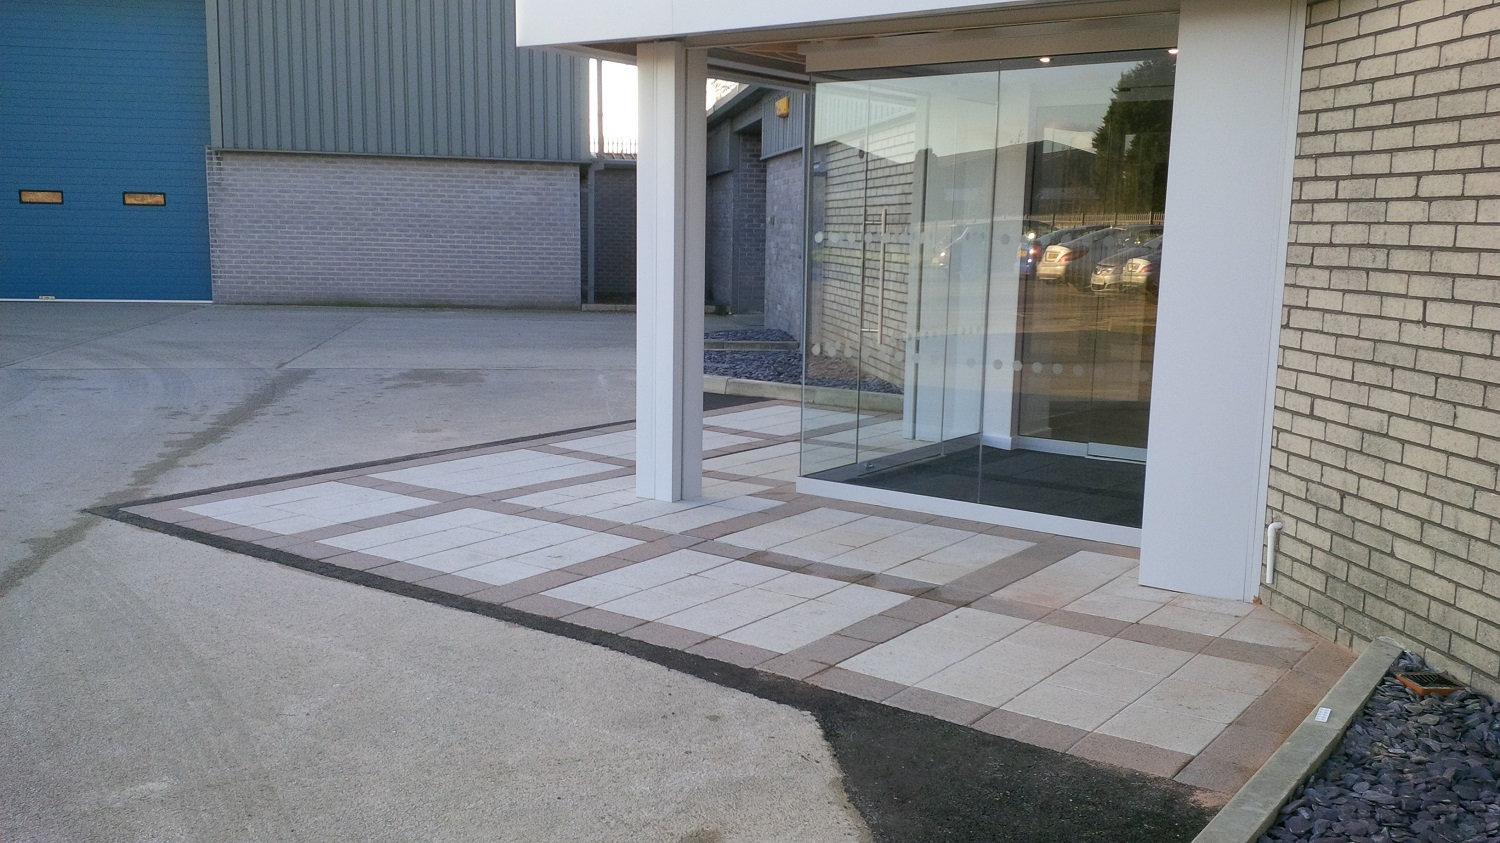 H6 Marshalls Argent Paving in Pinxton, Derbyshire